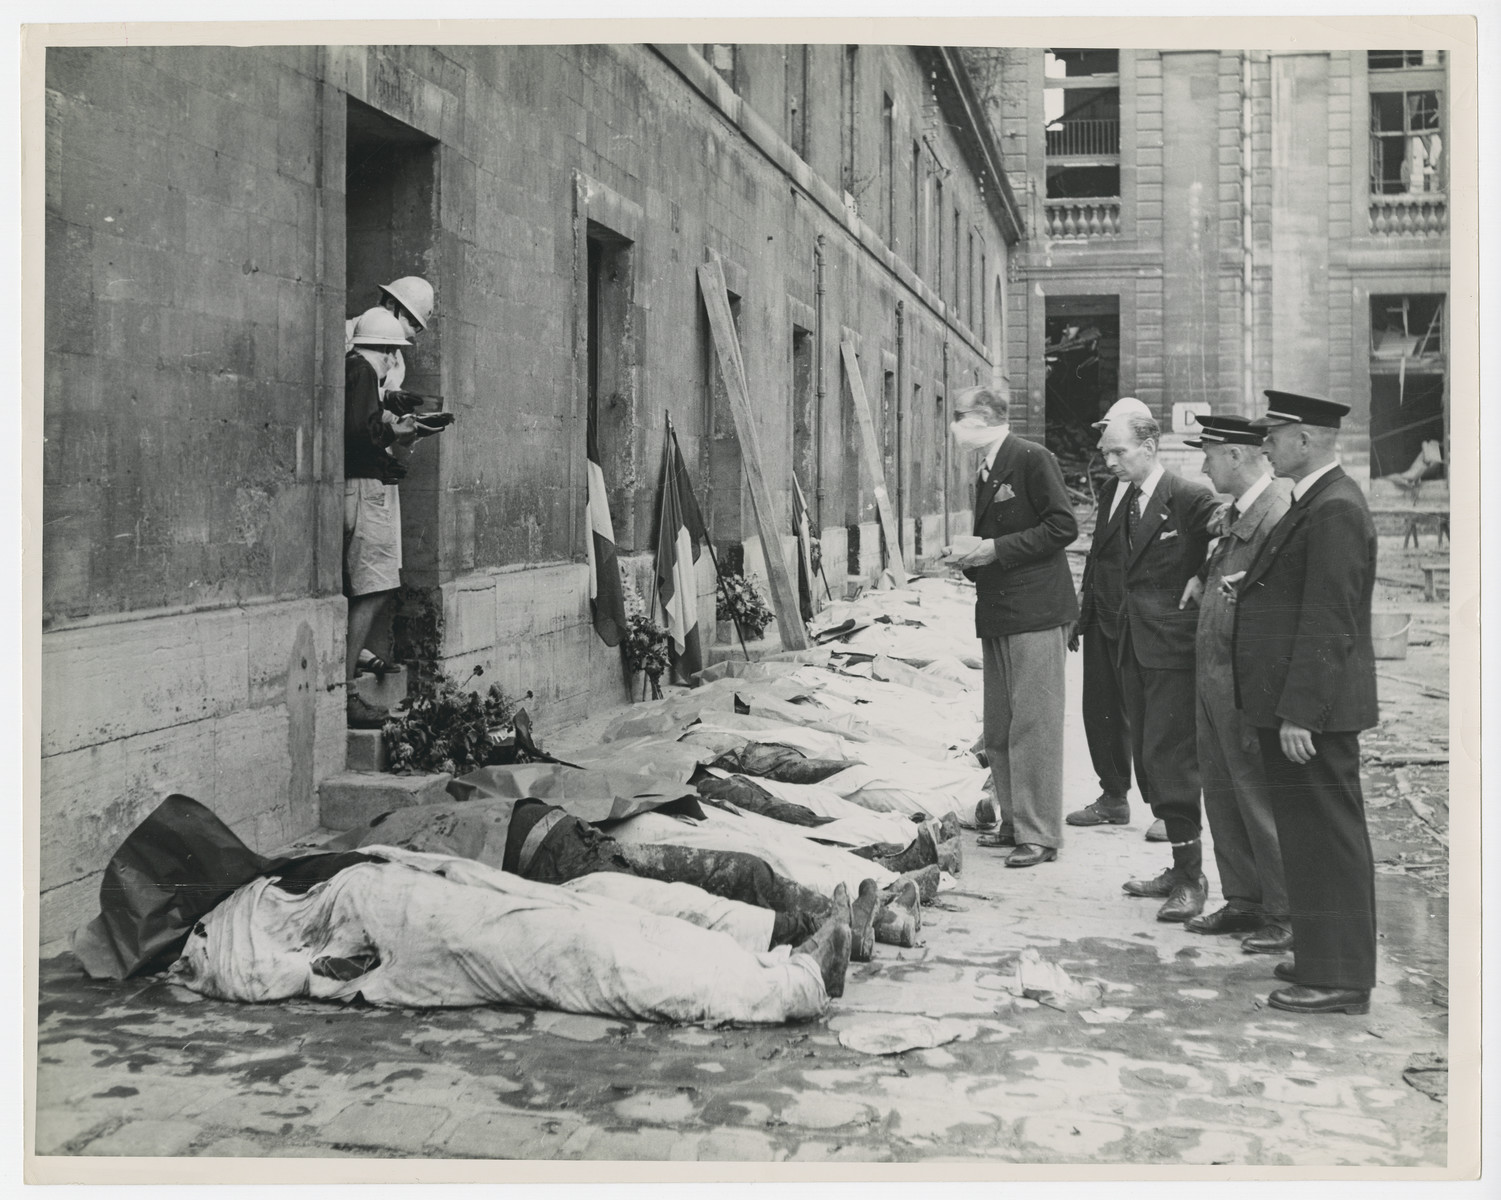 """French Red Cross workers try to identify the bodies of French forces murdered outside the Chateau St. Vincennes.    Original caption reads: """"French Red Cross workers seek identification papers on the bodies of members of the French Forces of the Interior who were murdered after being held captive in the Chateau St. Vincennes, famous old fort in Paris.  Panicked by the advance of the U.S. forces, the Germans dug pits, brought their French prisoners out in batches of 15 and machine-gunned them.  After the liberation of Paris, the bodies were disinterred for identification and respectable burial""""."""